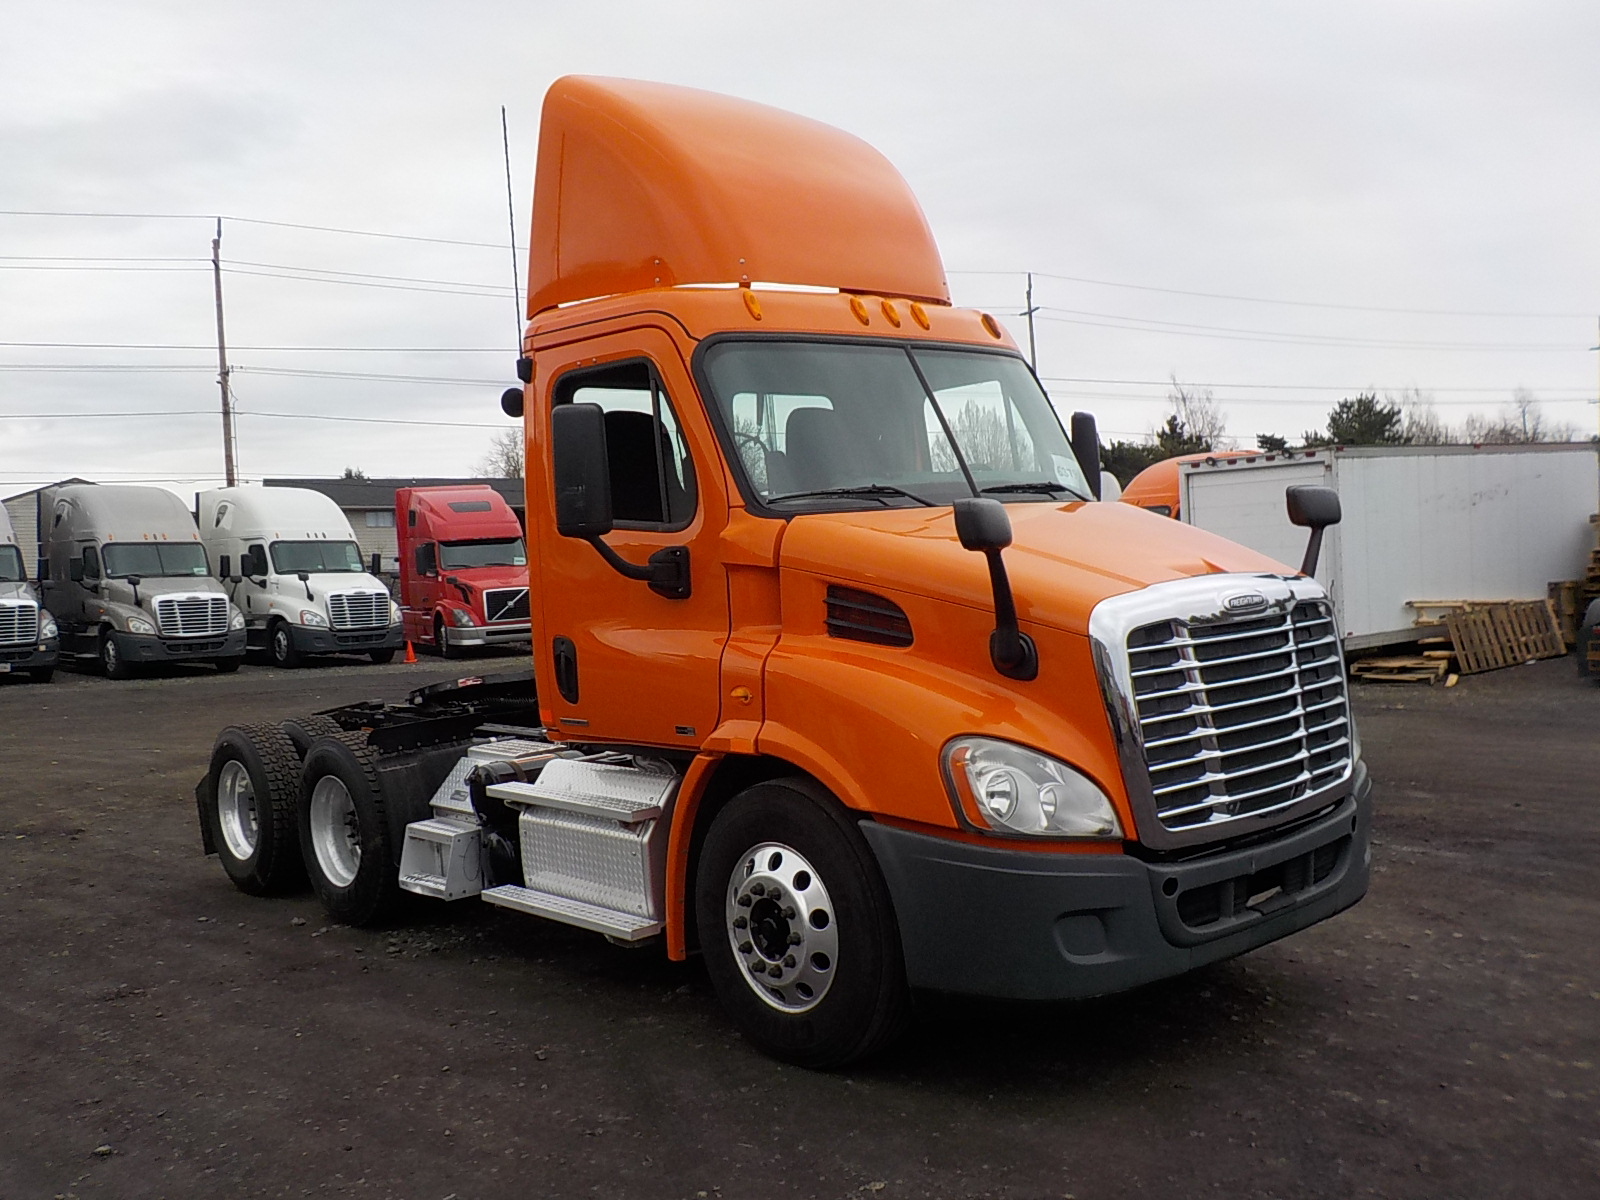 USED 2012 FREIGHTLINER CASCADIA DAYCAB TRUCK #136263